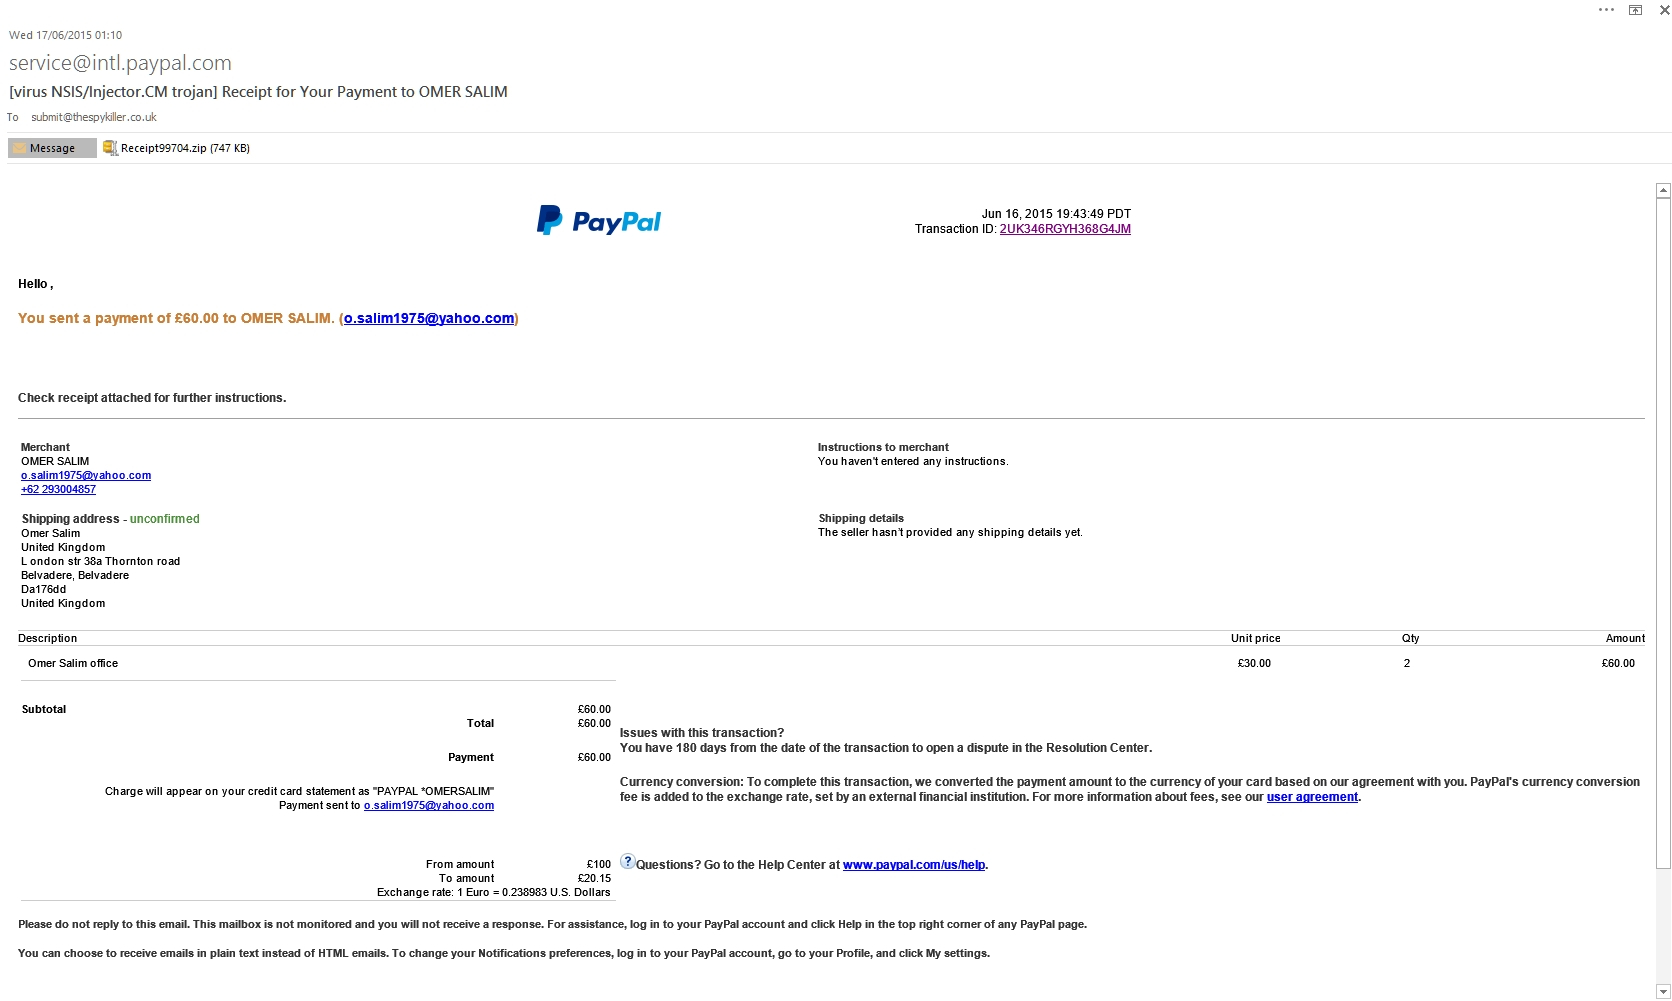 Paypal Receipt For Your Payment To Omer Salim – Fake Pdf Malware With Paypal Invoice Template